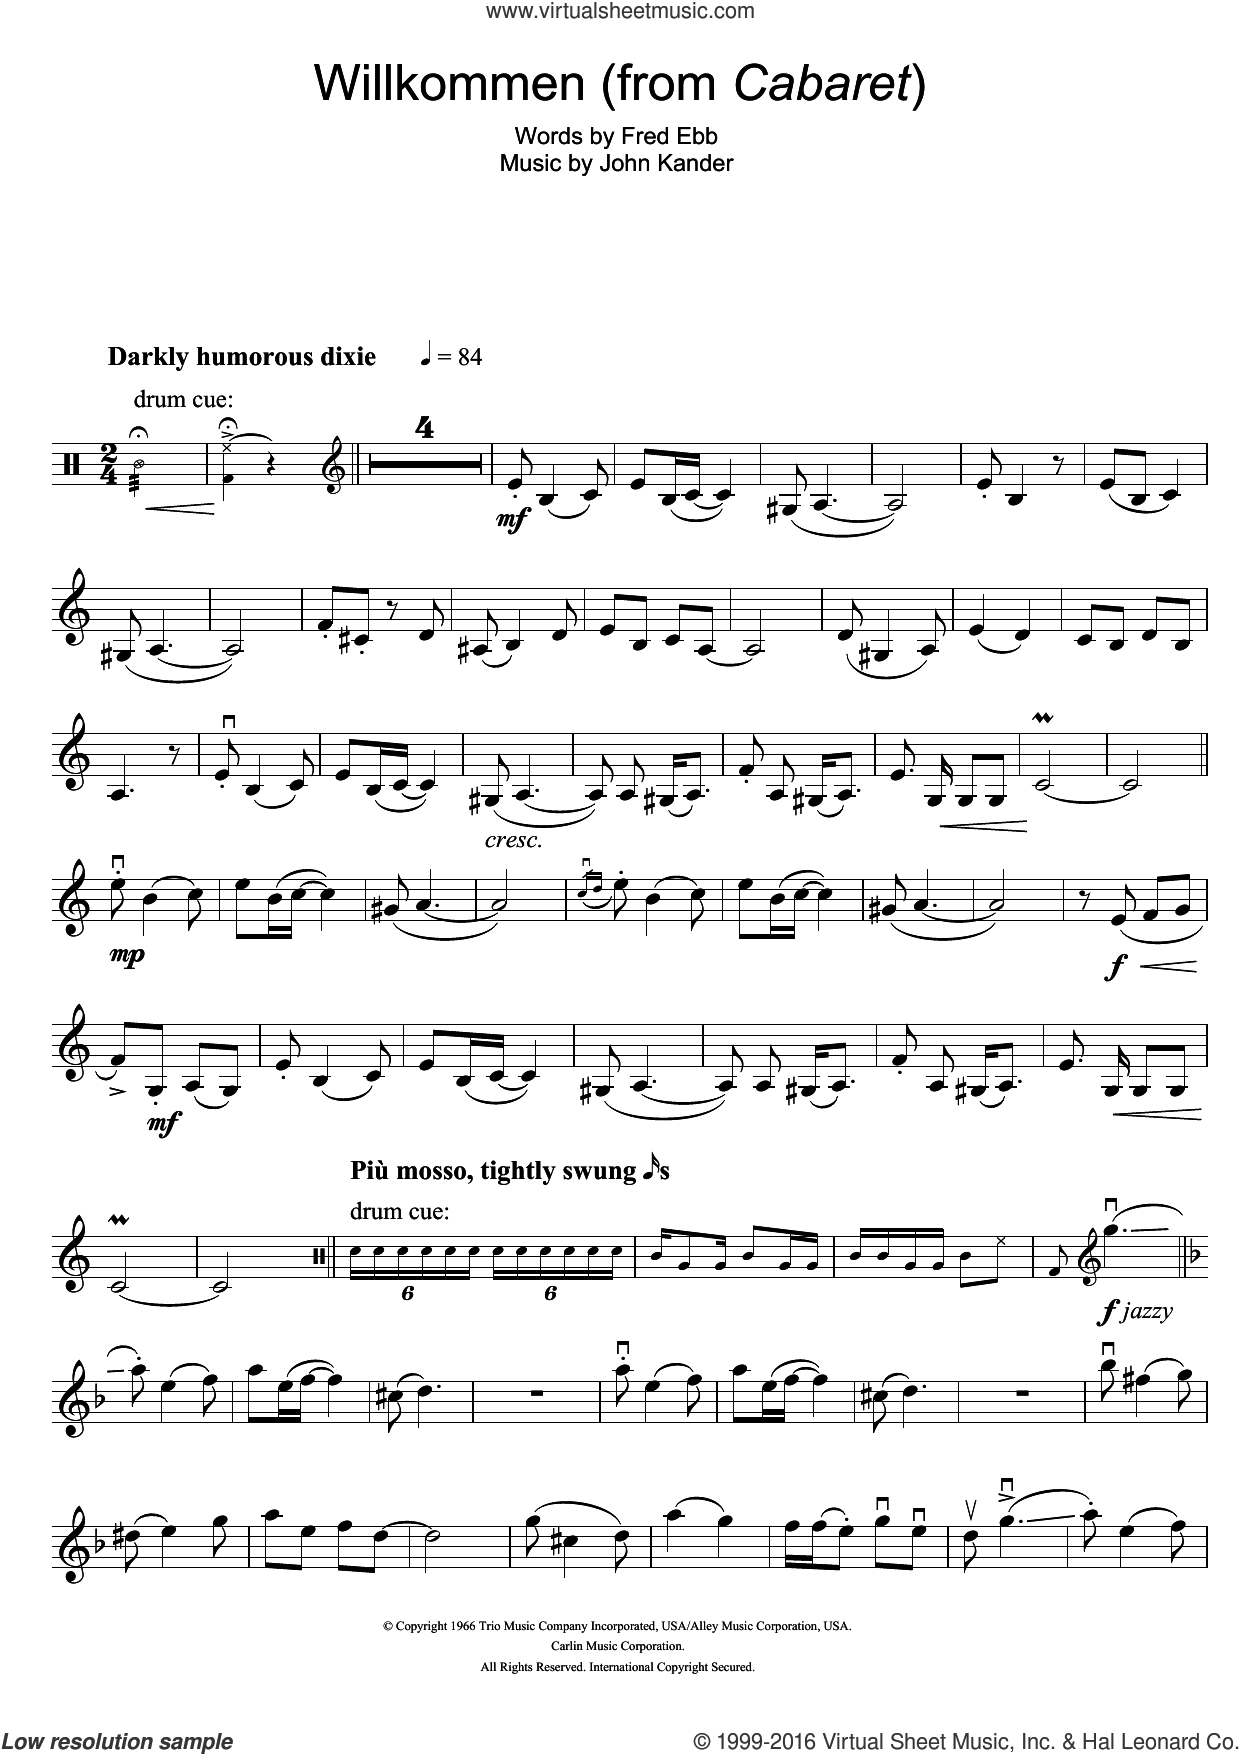 Willkommen (from Cabaret) sheet music for violin solo by Kander & Ebb, Fred Ebb and John Kander, intermediate